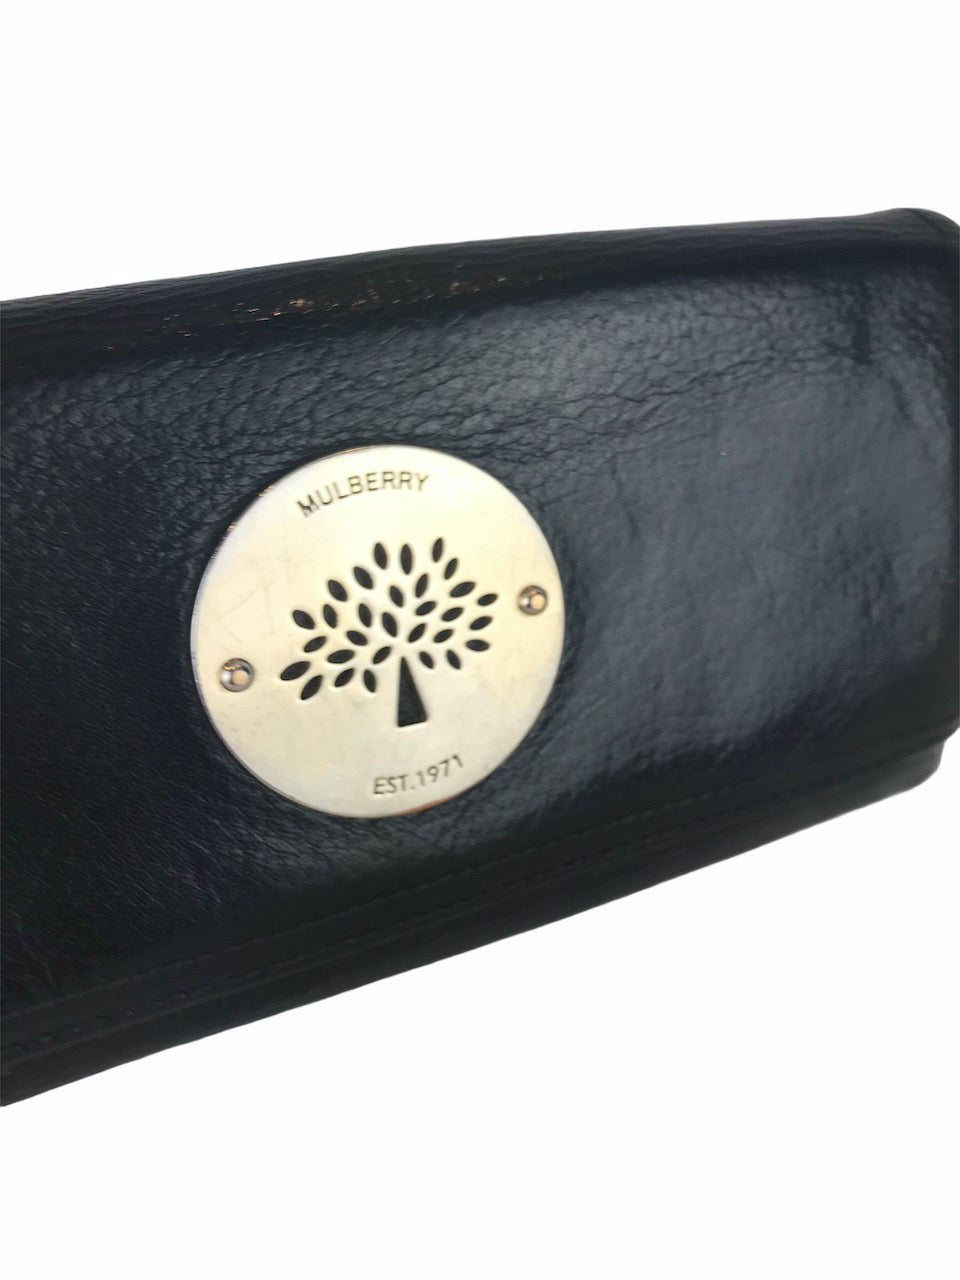 Mulberry Black Leather Wallet  - As Seen On Instagram 09/09/2020